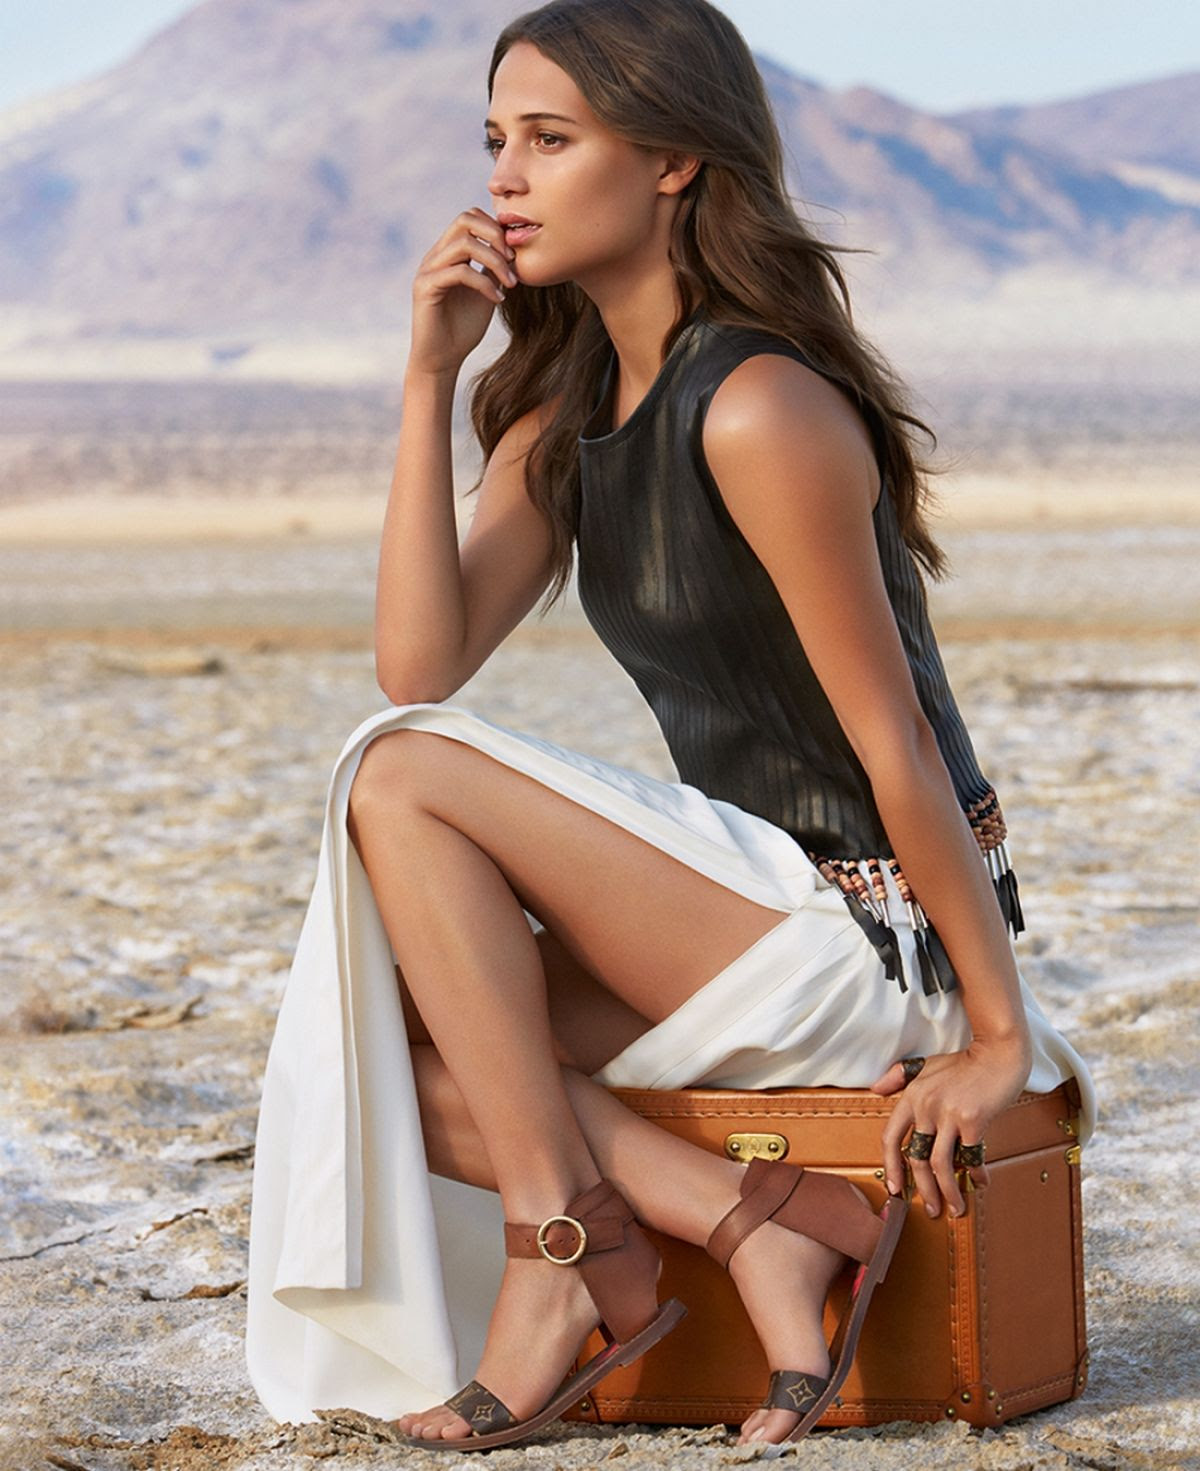 ALICIA VIKANDER for Louis Vuitton Spirit of Travel Campaign